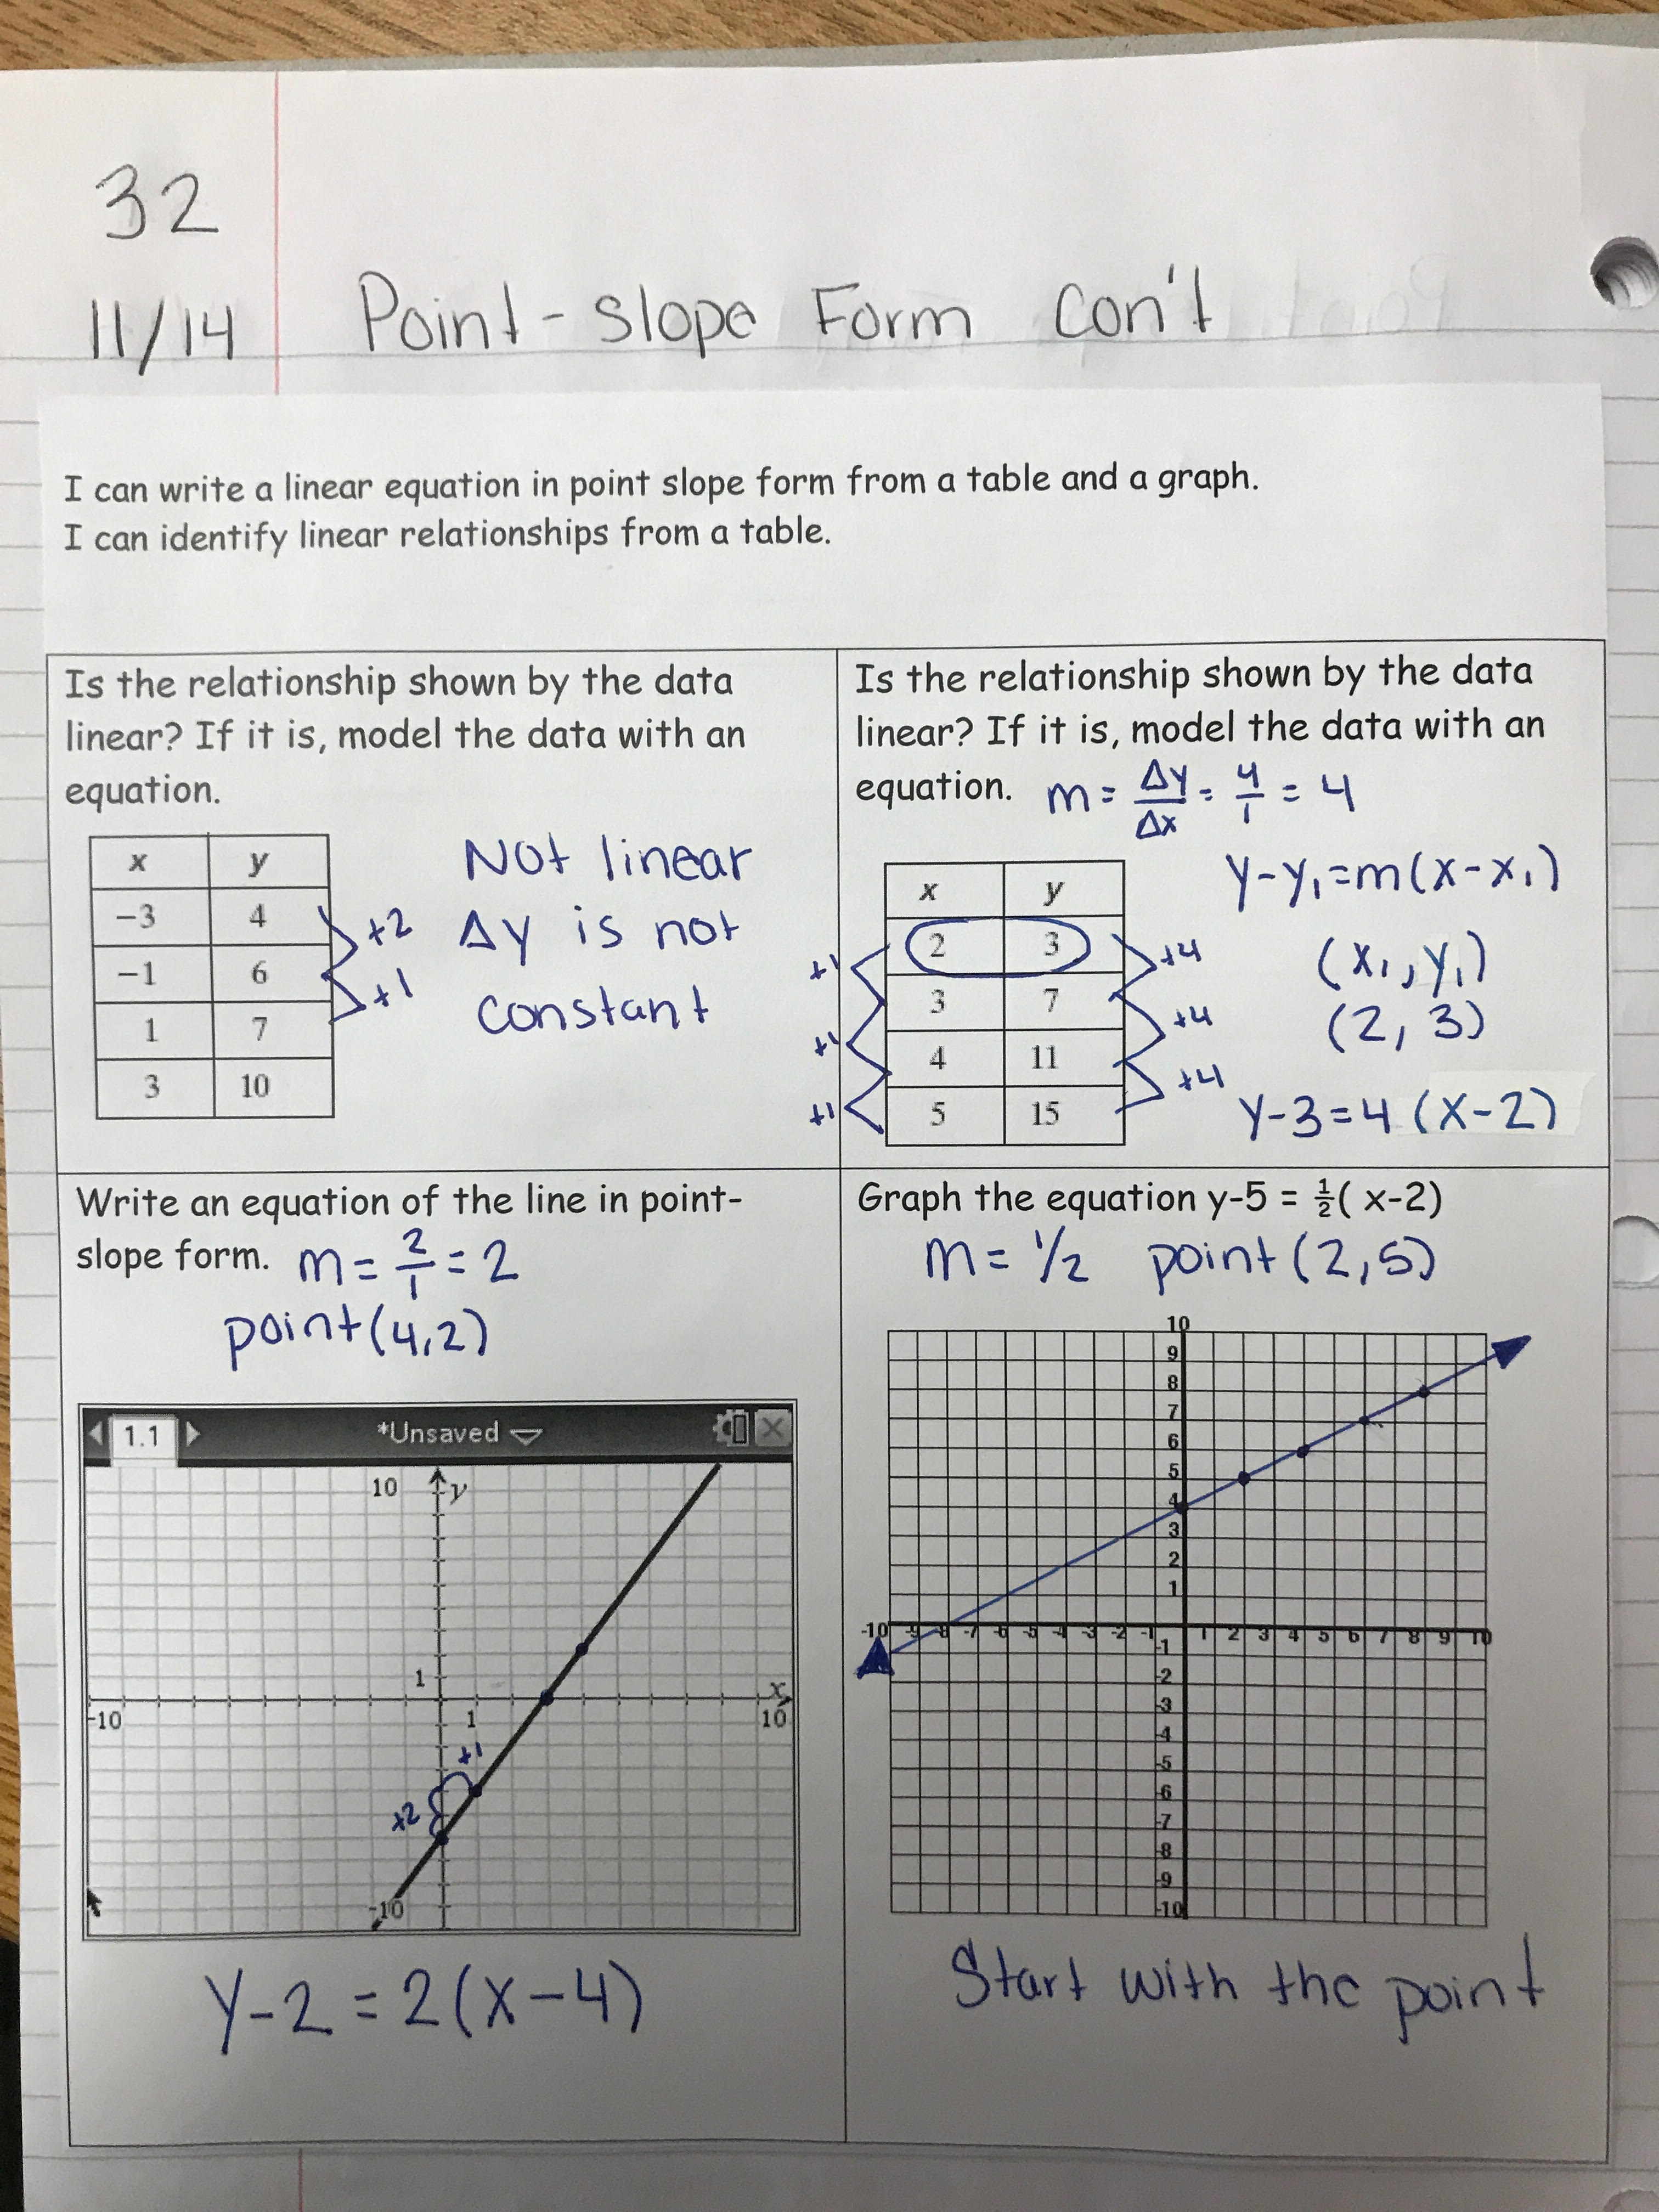 Writing Equations From Tables And Graphs Answer Key